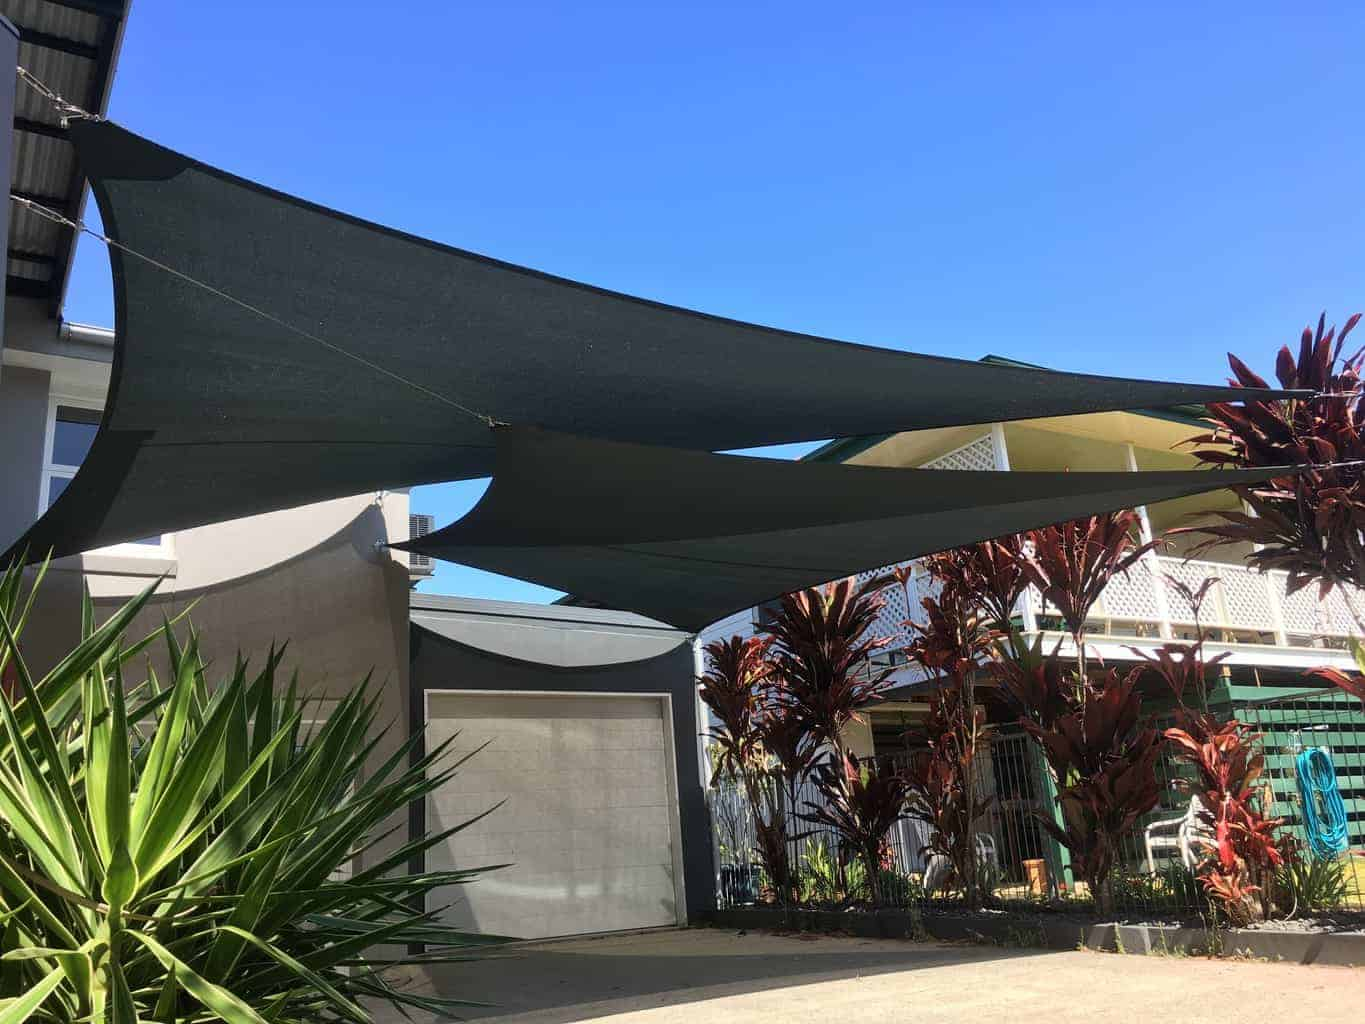 Chermside Twin Overlapping Driveway Sails - Brisbane - Superior Shade Sails